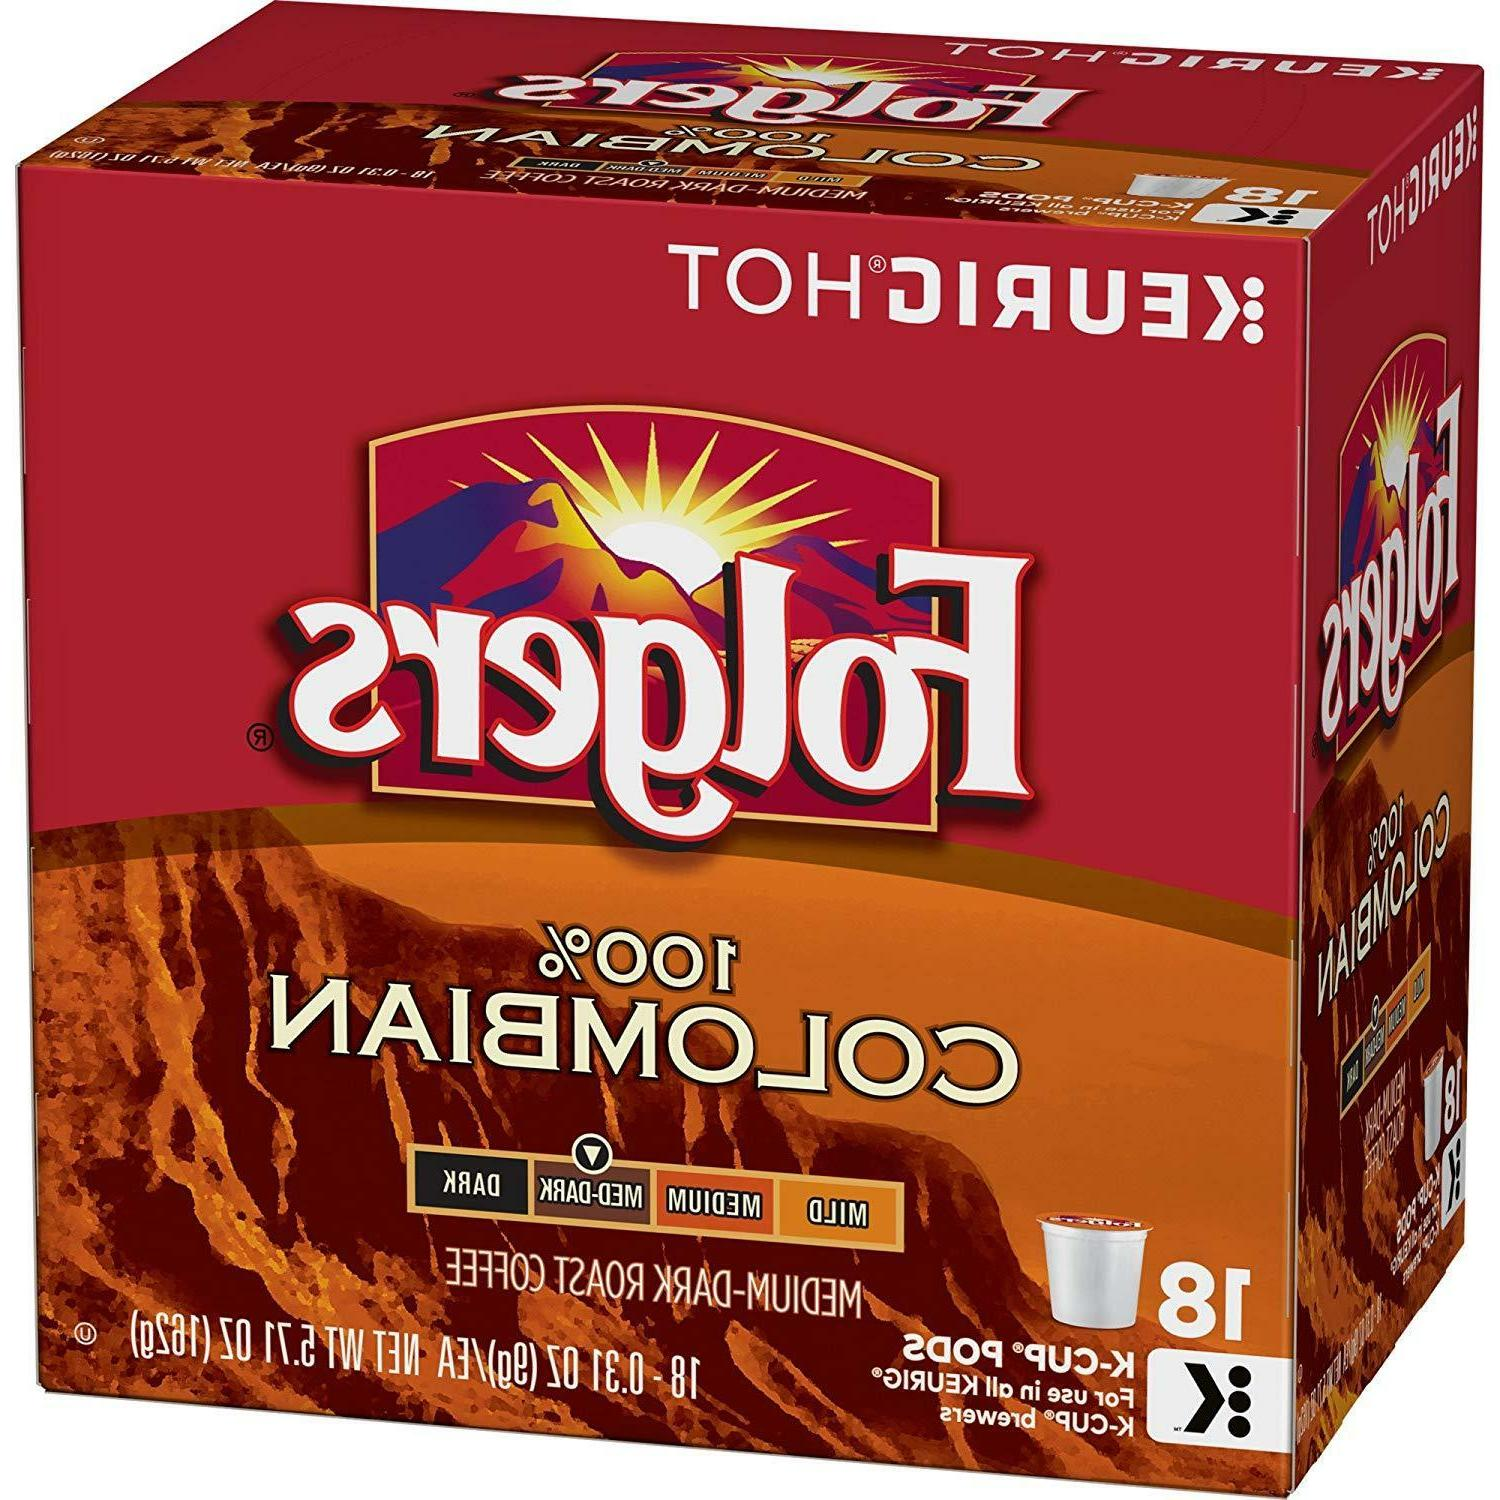 Folgers 100% Lively Colombian Coffee 18 to 90 Keurig K cups